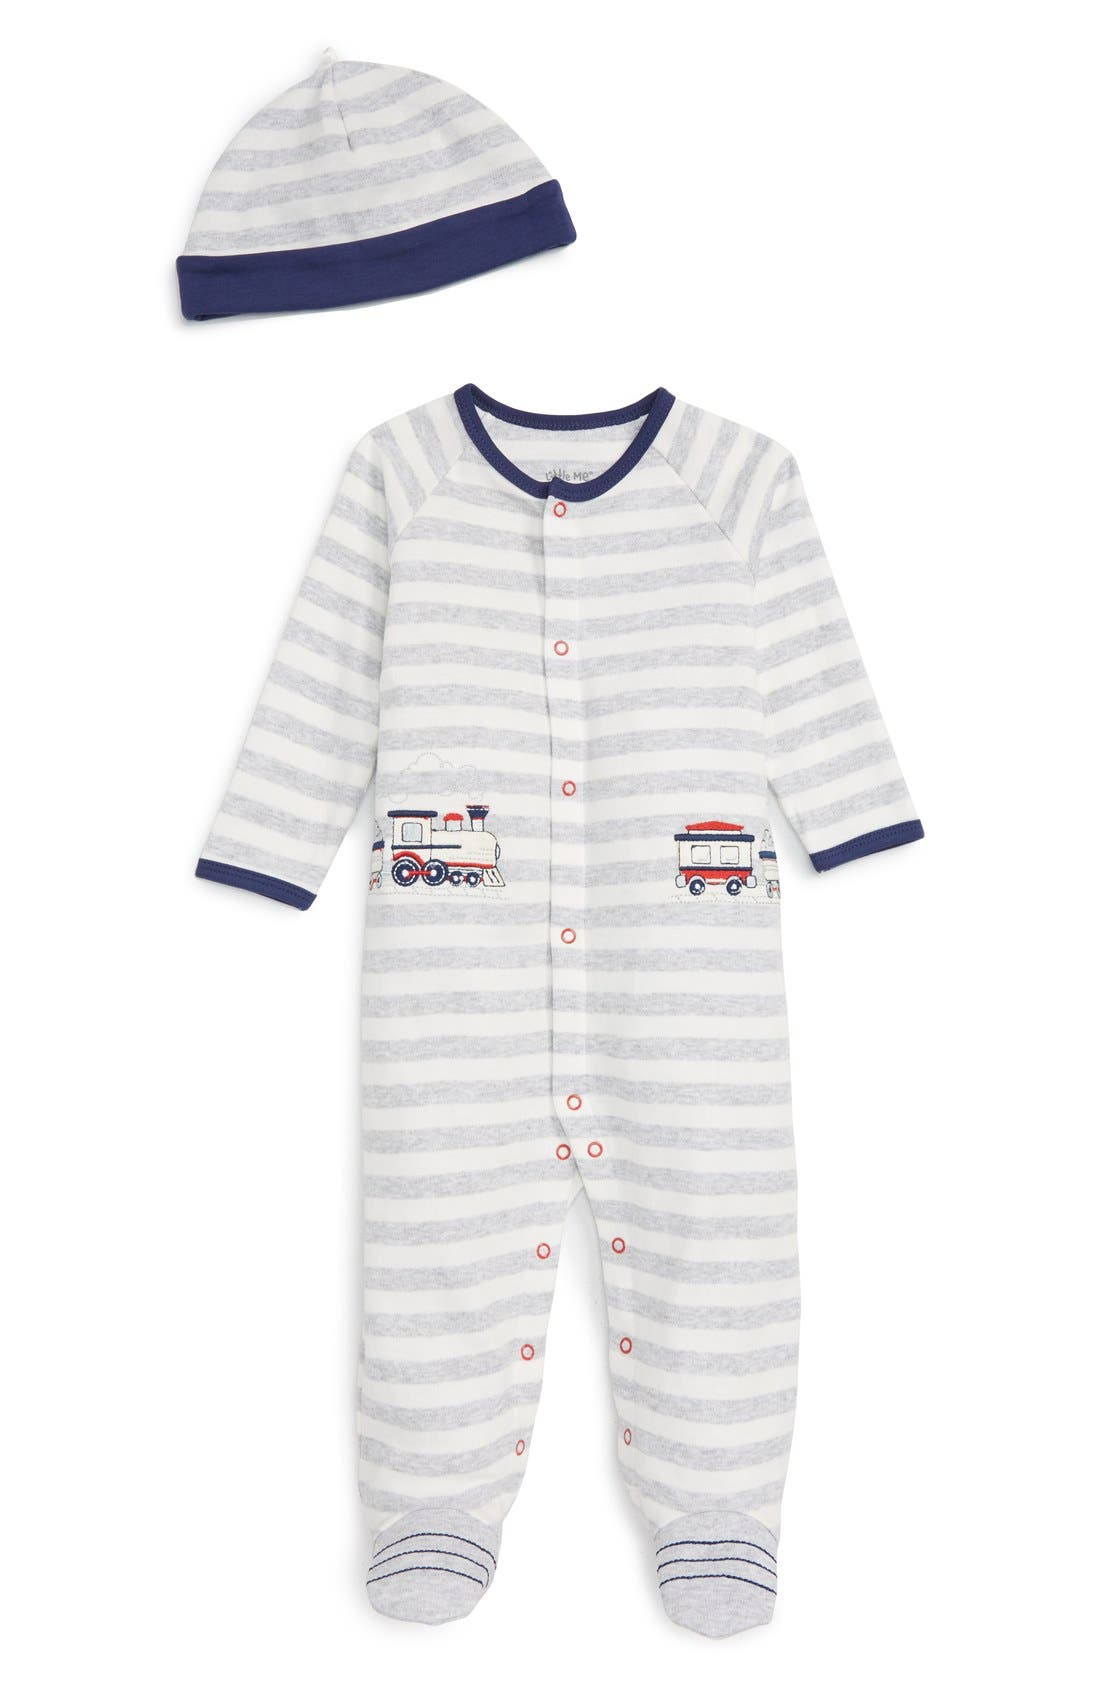 LITTLE ME 'Train' Footie & Hat Set